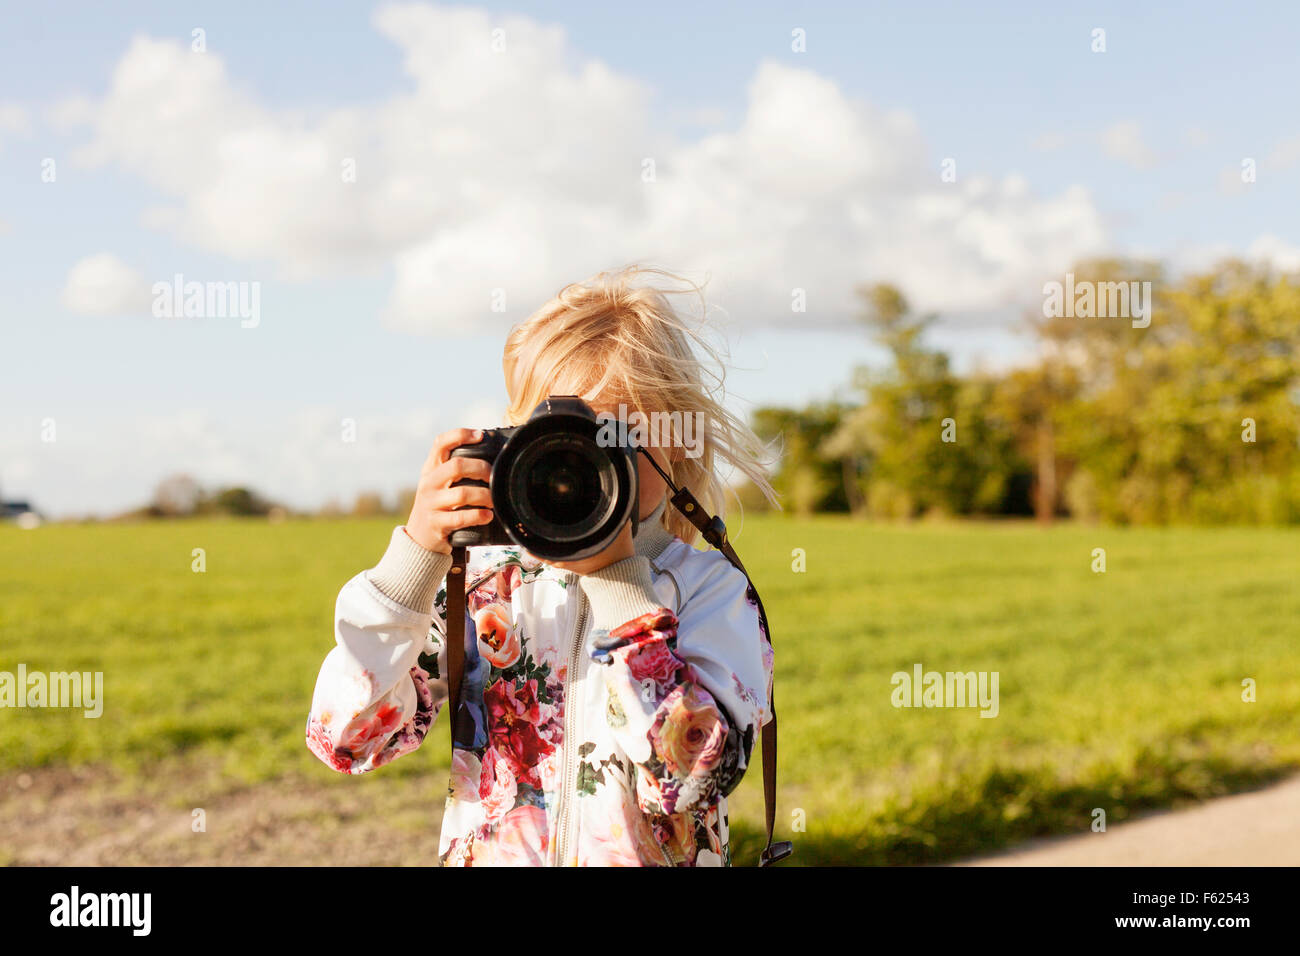 Girl photographing through SLR camera on field against sky Stock Photo